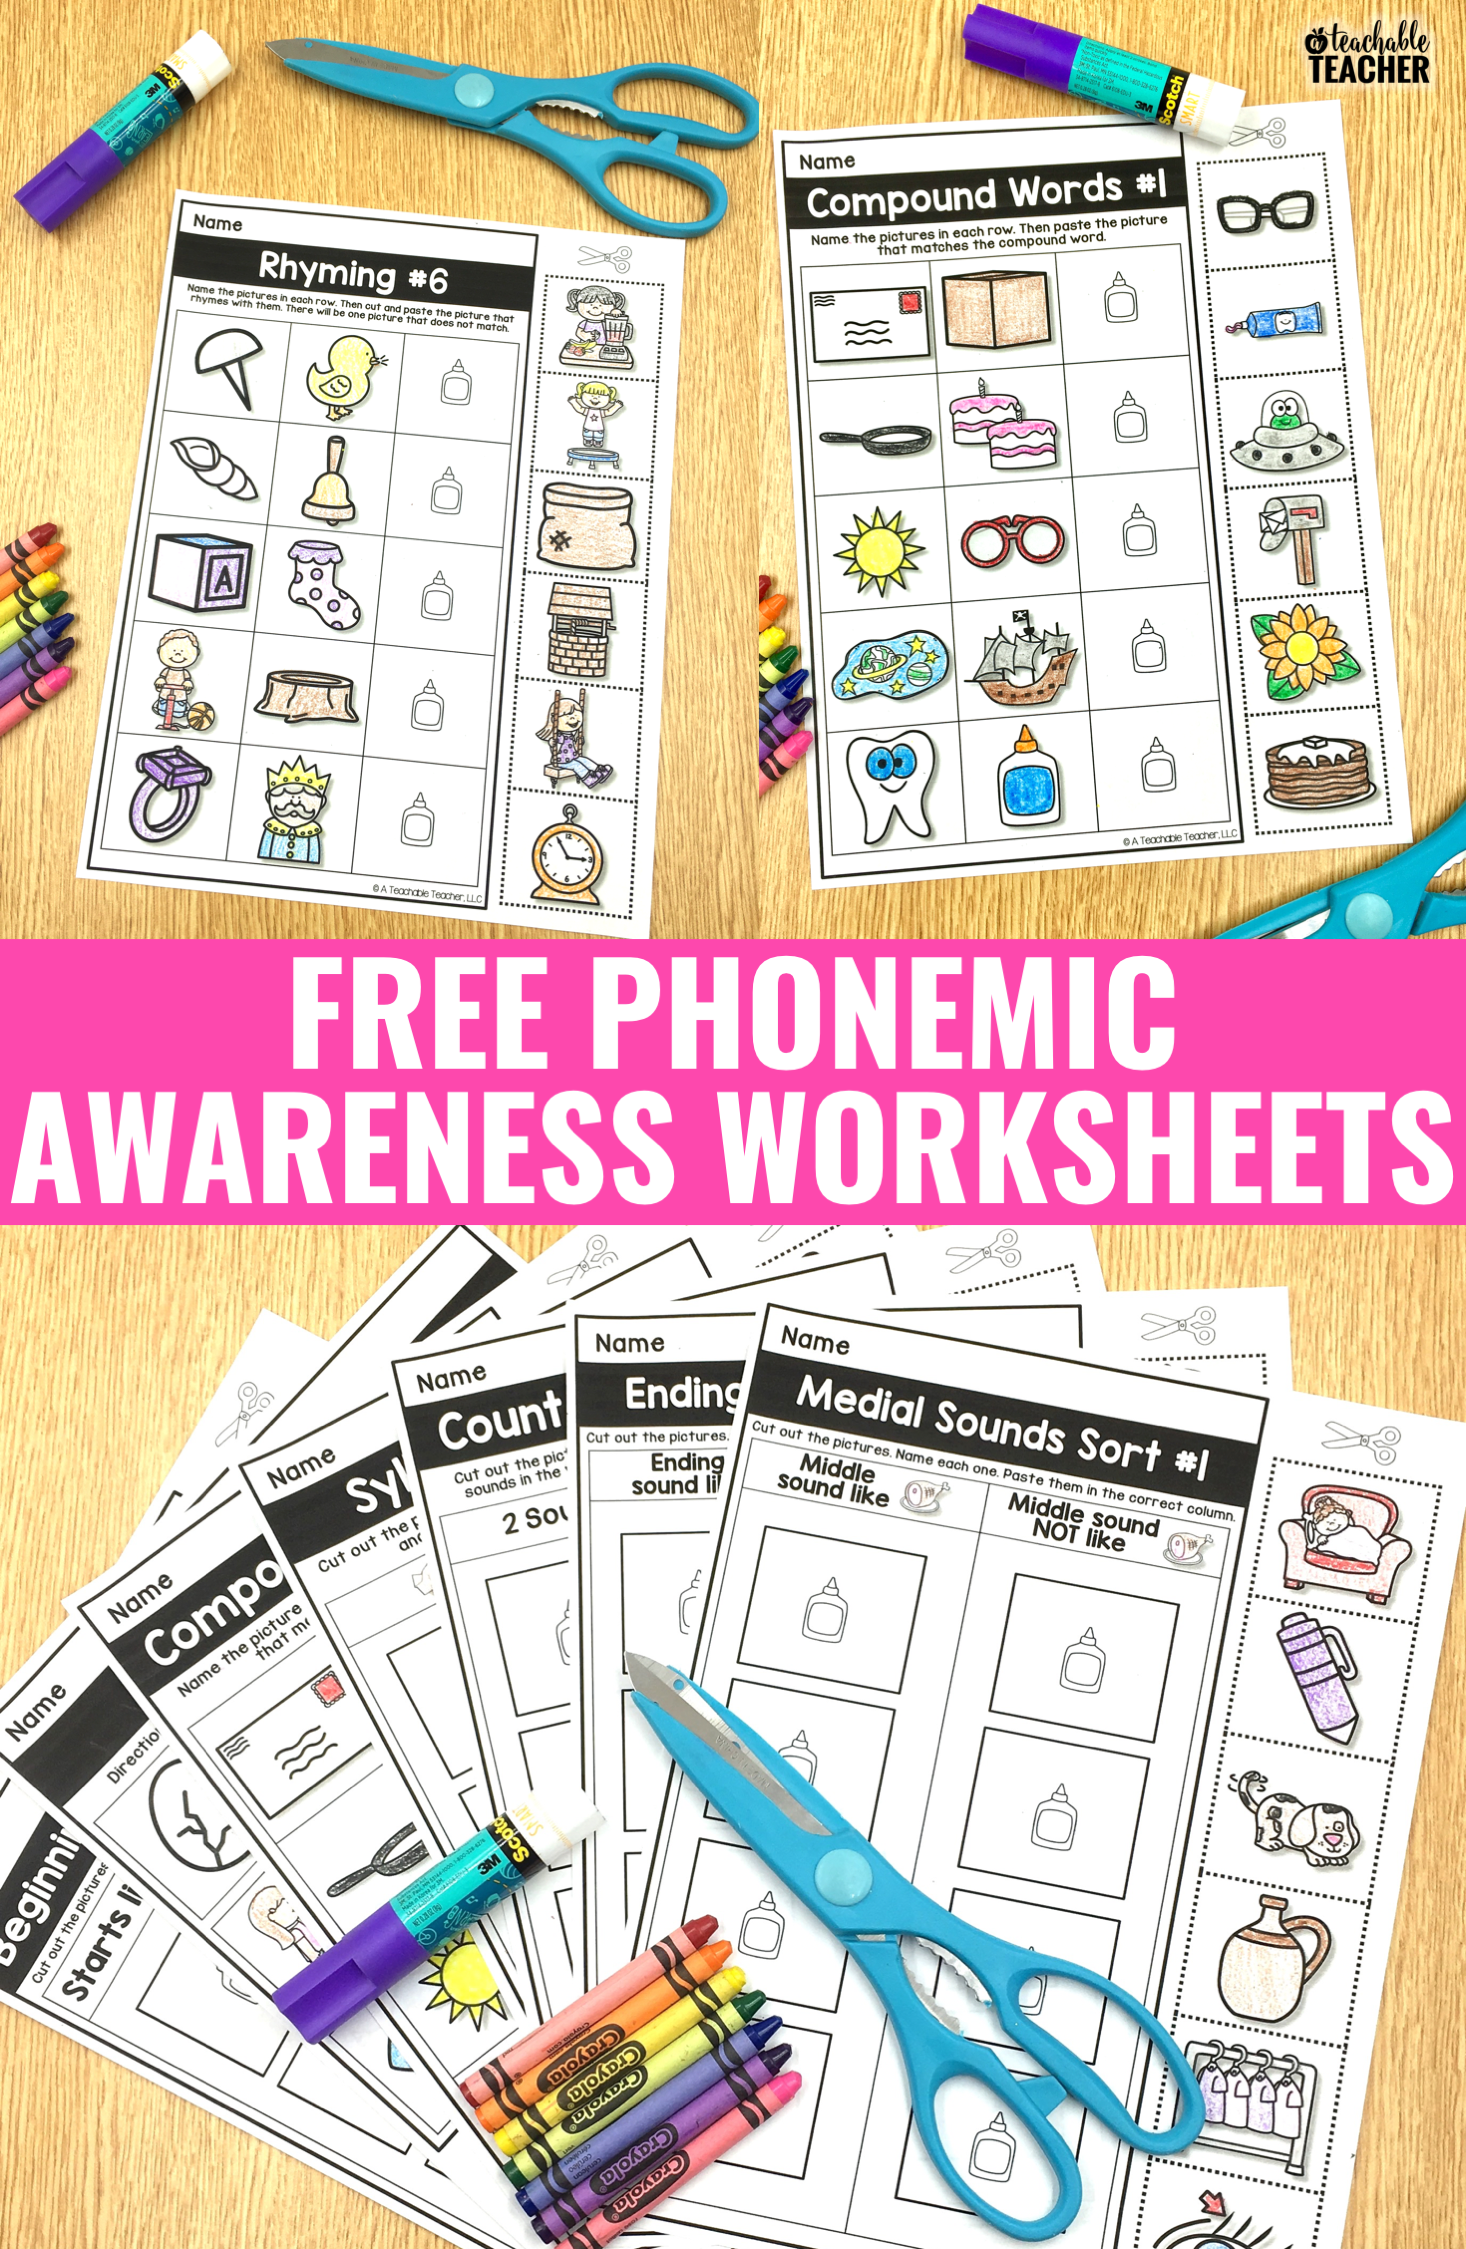 Free Phonemic Awareness Worksheets